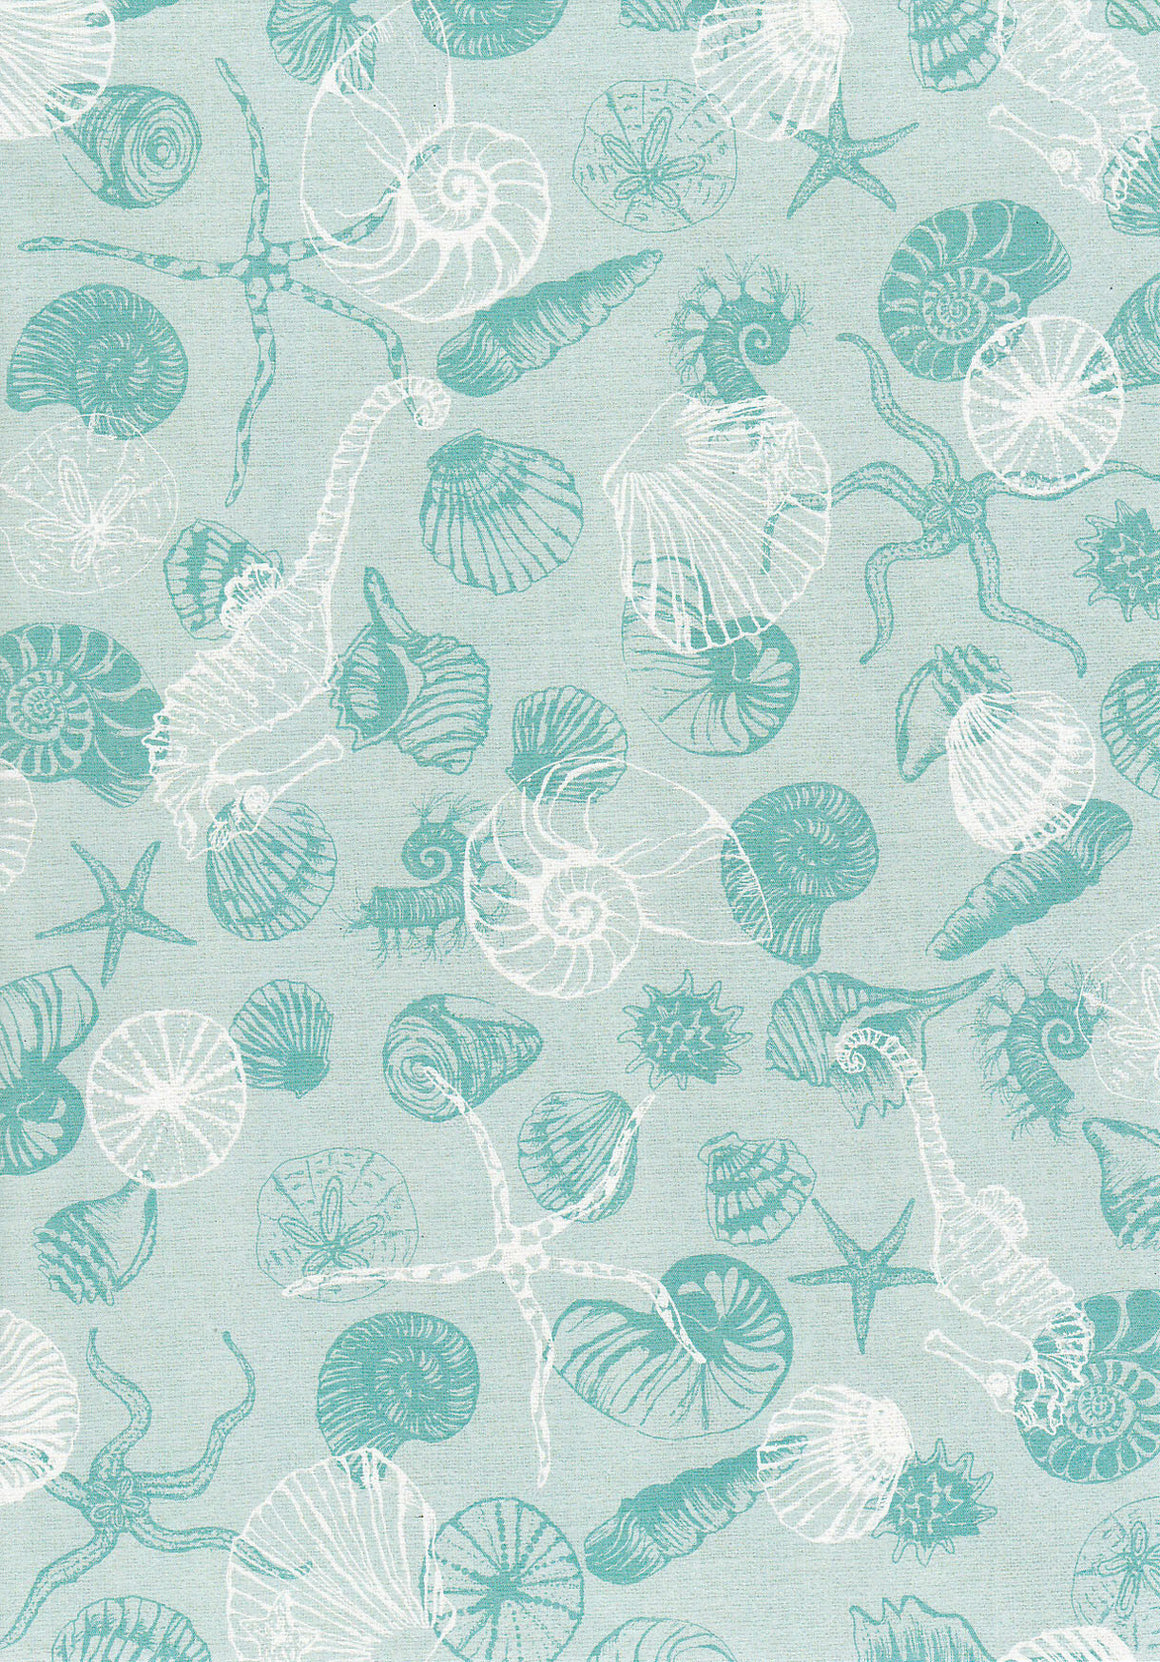 Sea Shell on Aqua Linen A4 Paper